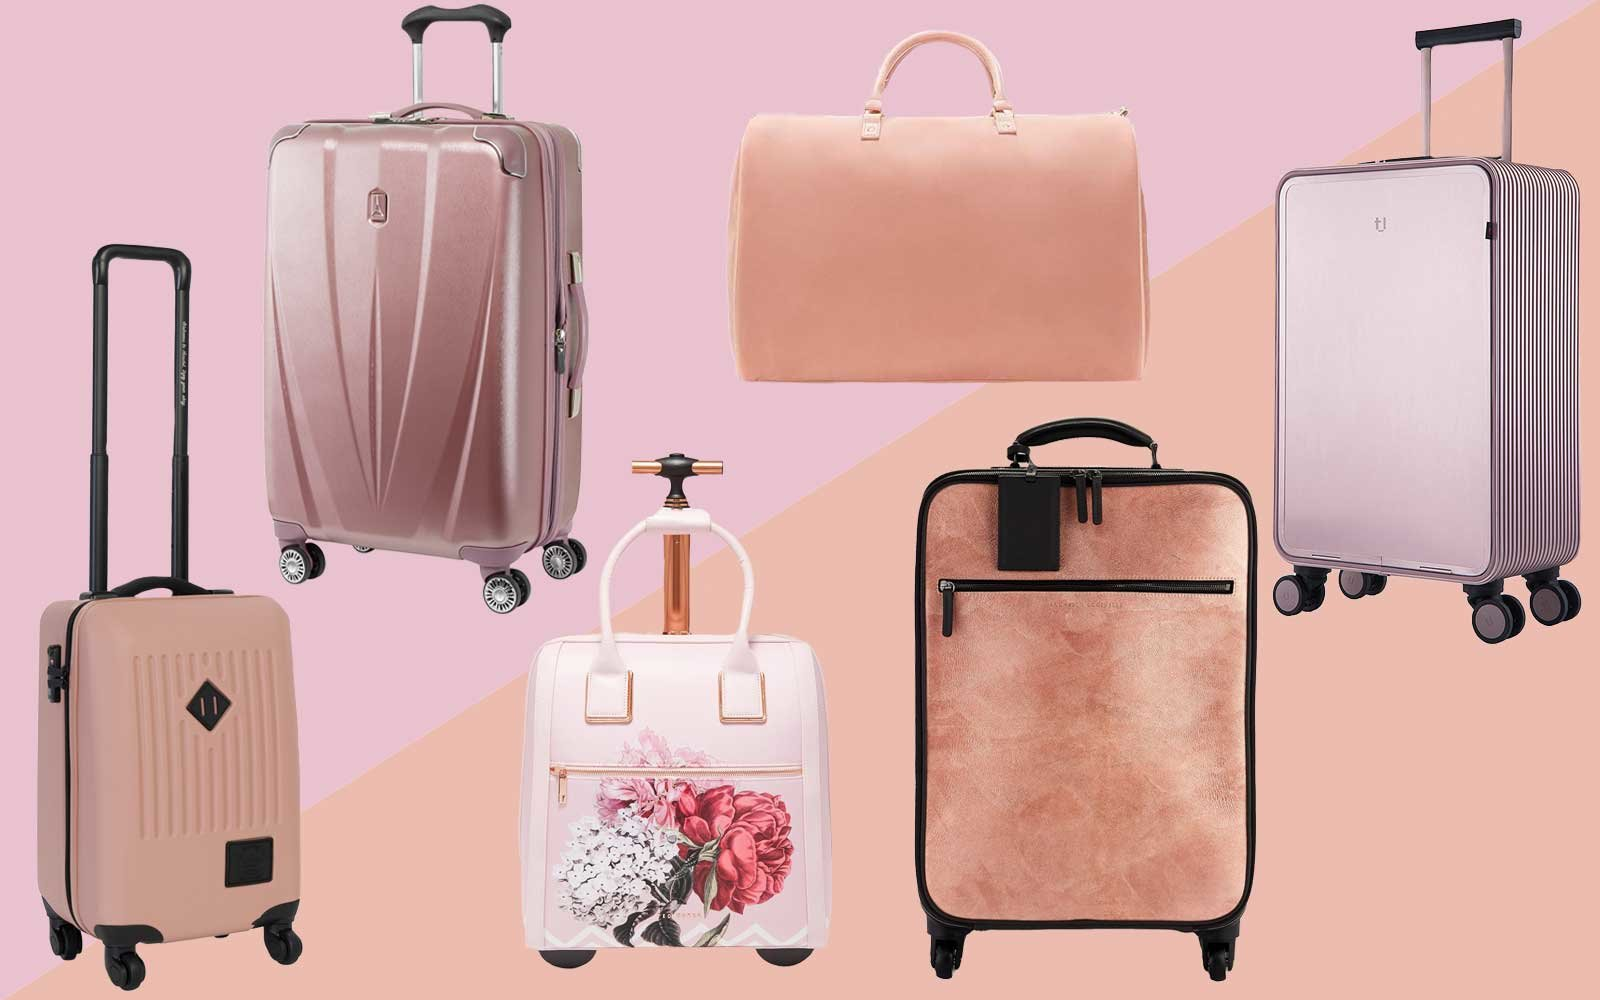 pink-luggage-PNKLGG0518